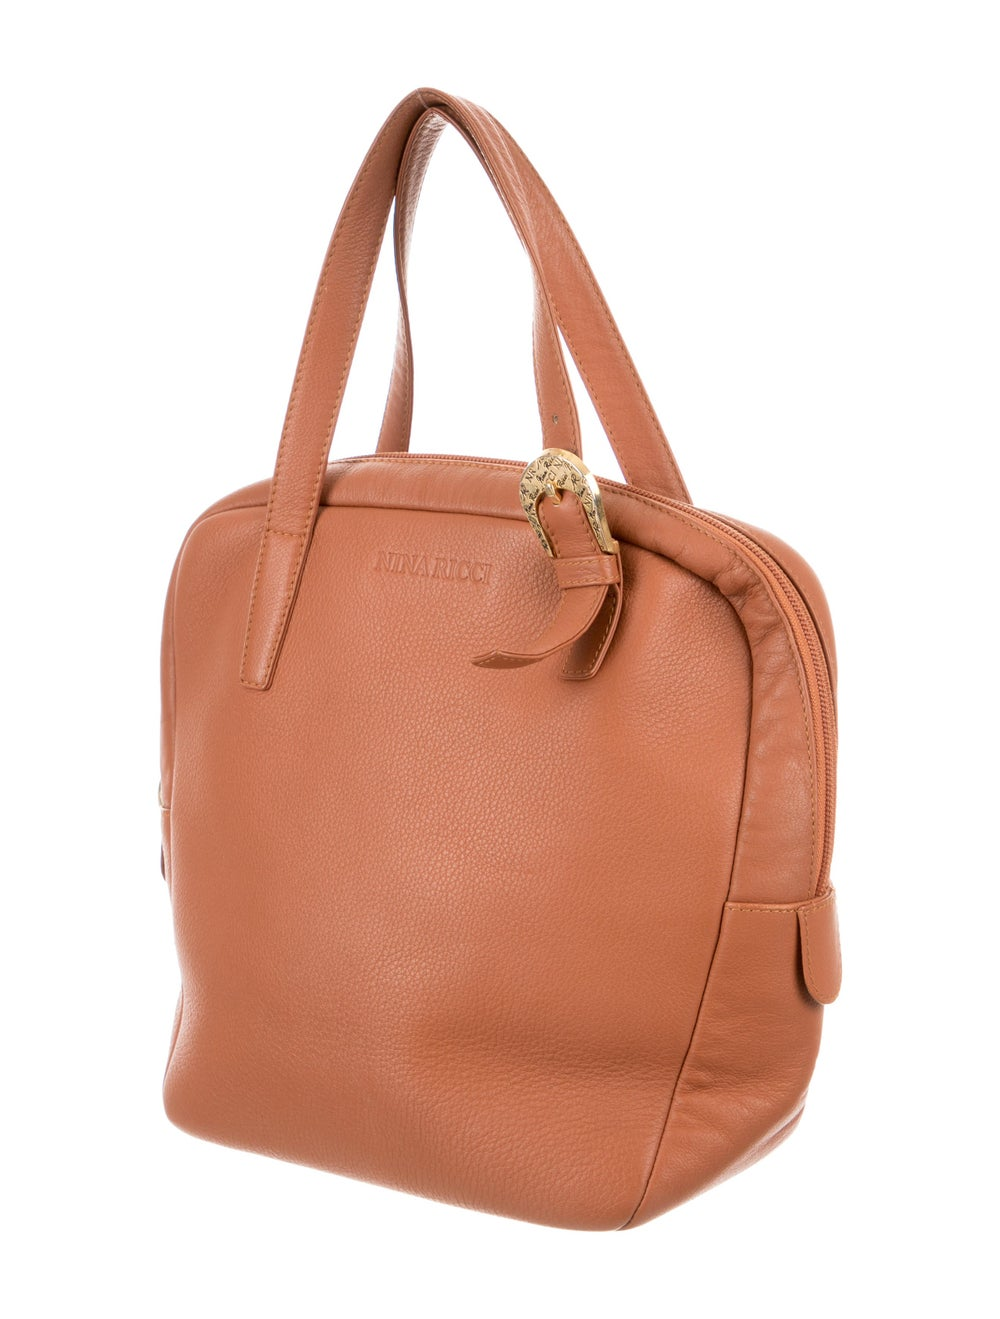 Nina Ricci Leather Handle Bag Brown - image 3